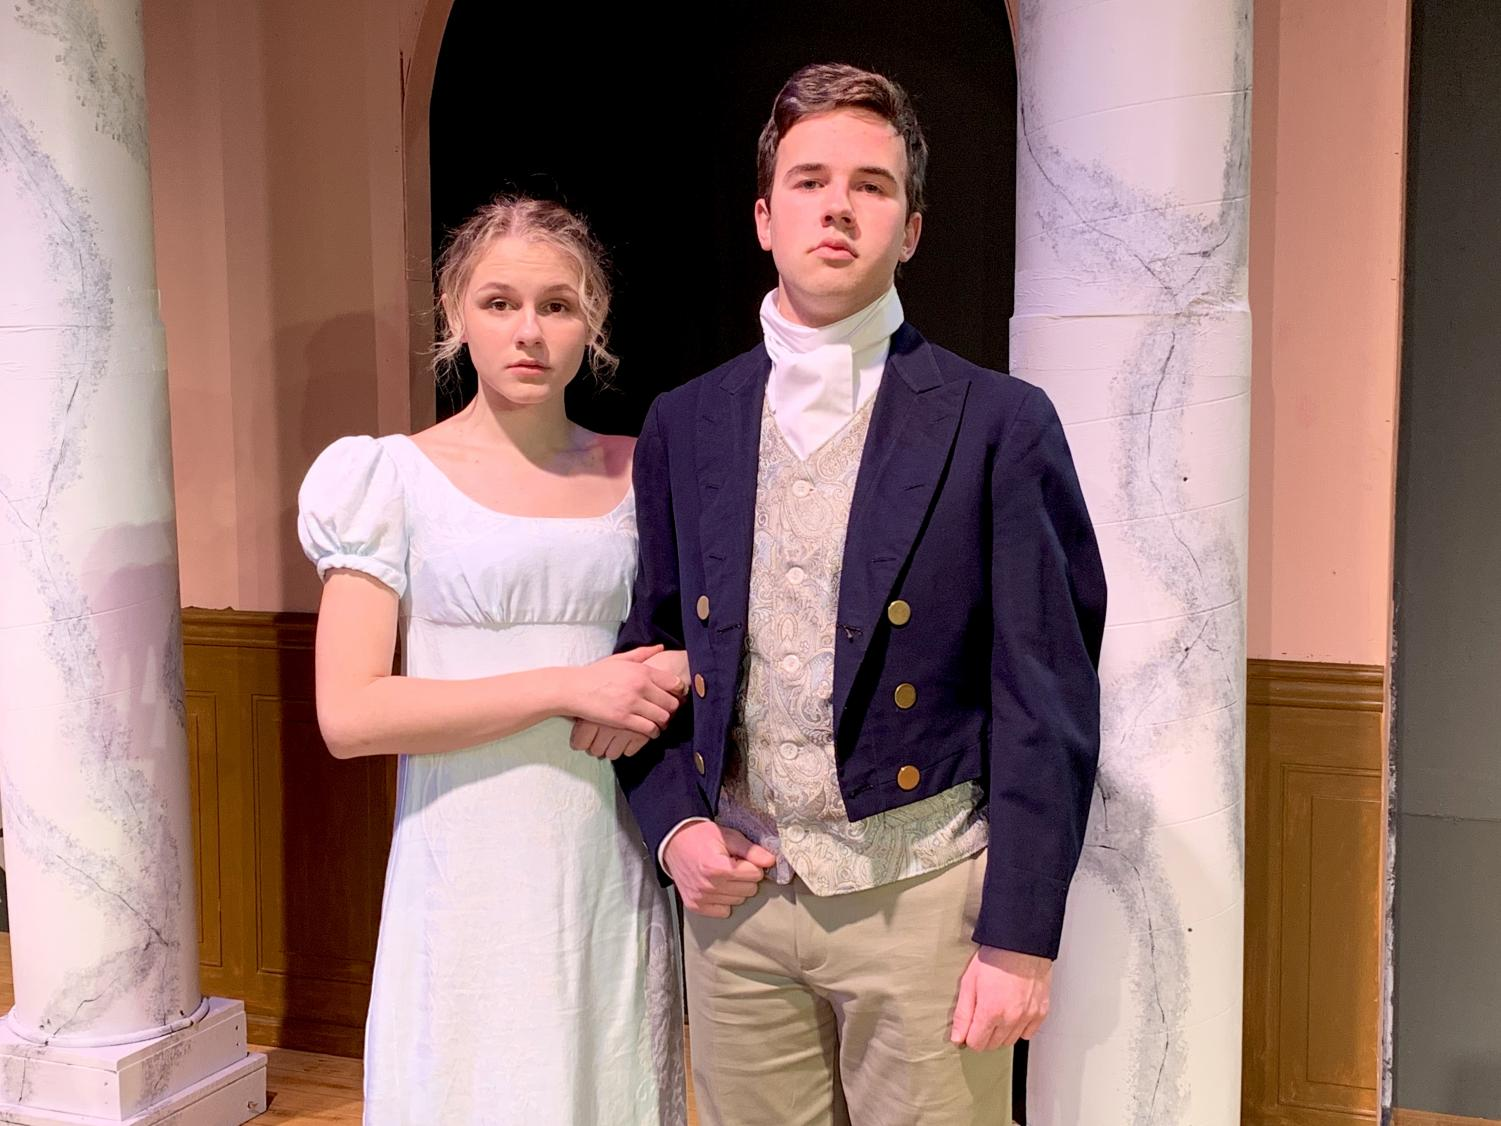 Sophomore Daisy Held and junior Sam Trott link arms in full costume as Elizabeth Bennet and Mr. William Darcy, respectively.